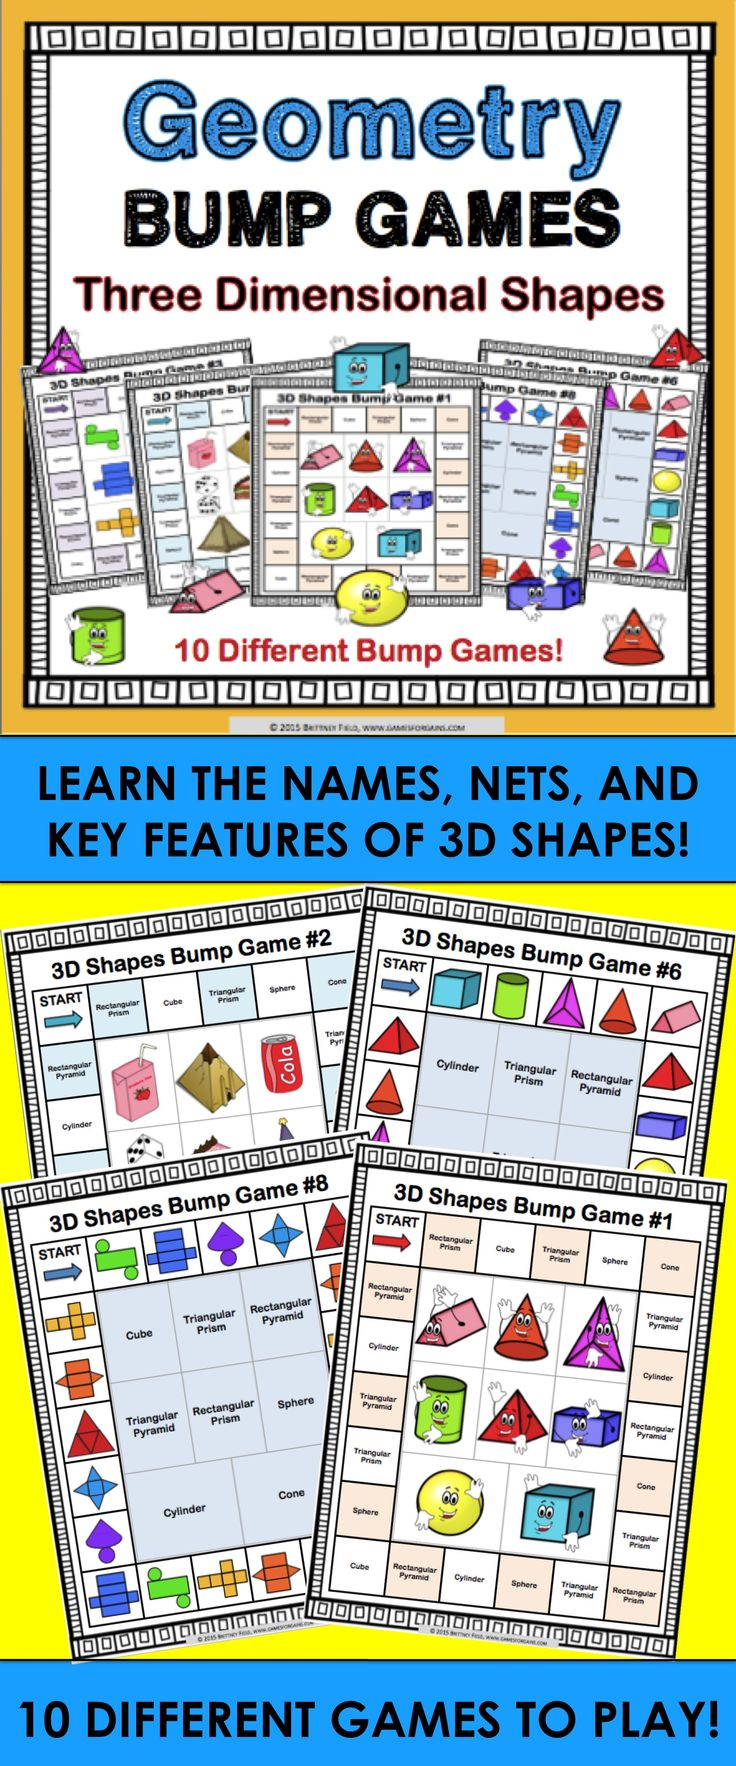 3D Shapes Bump Games contains 10 different games to help students practice identifying and classifying 3D shapes. Within these 3D shapes games, students practice matching the names of 3D shapes to images, real-world images, nets, and to specific characteristics (number of faces, edges, and vertices).  3D shapes included: Cube, Rectangular Prism, Rectangular Pyramid, Triangular Prism, Triangular Pyramid, Cone, Cylinder, Sphere.